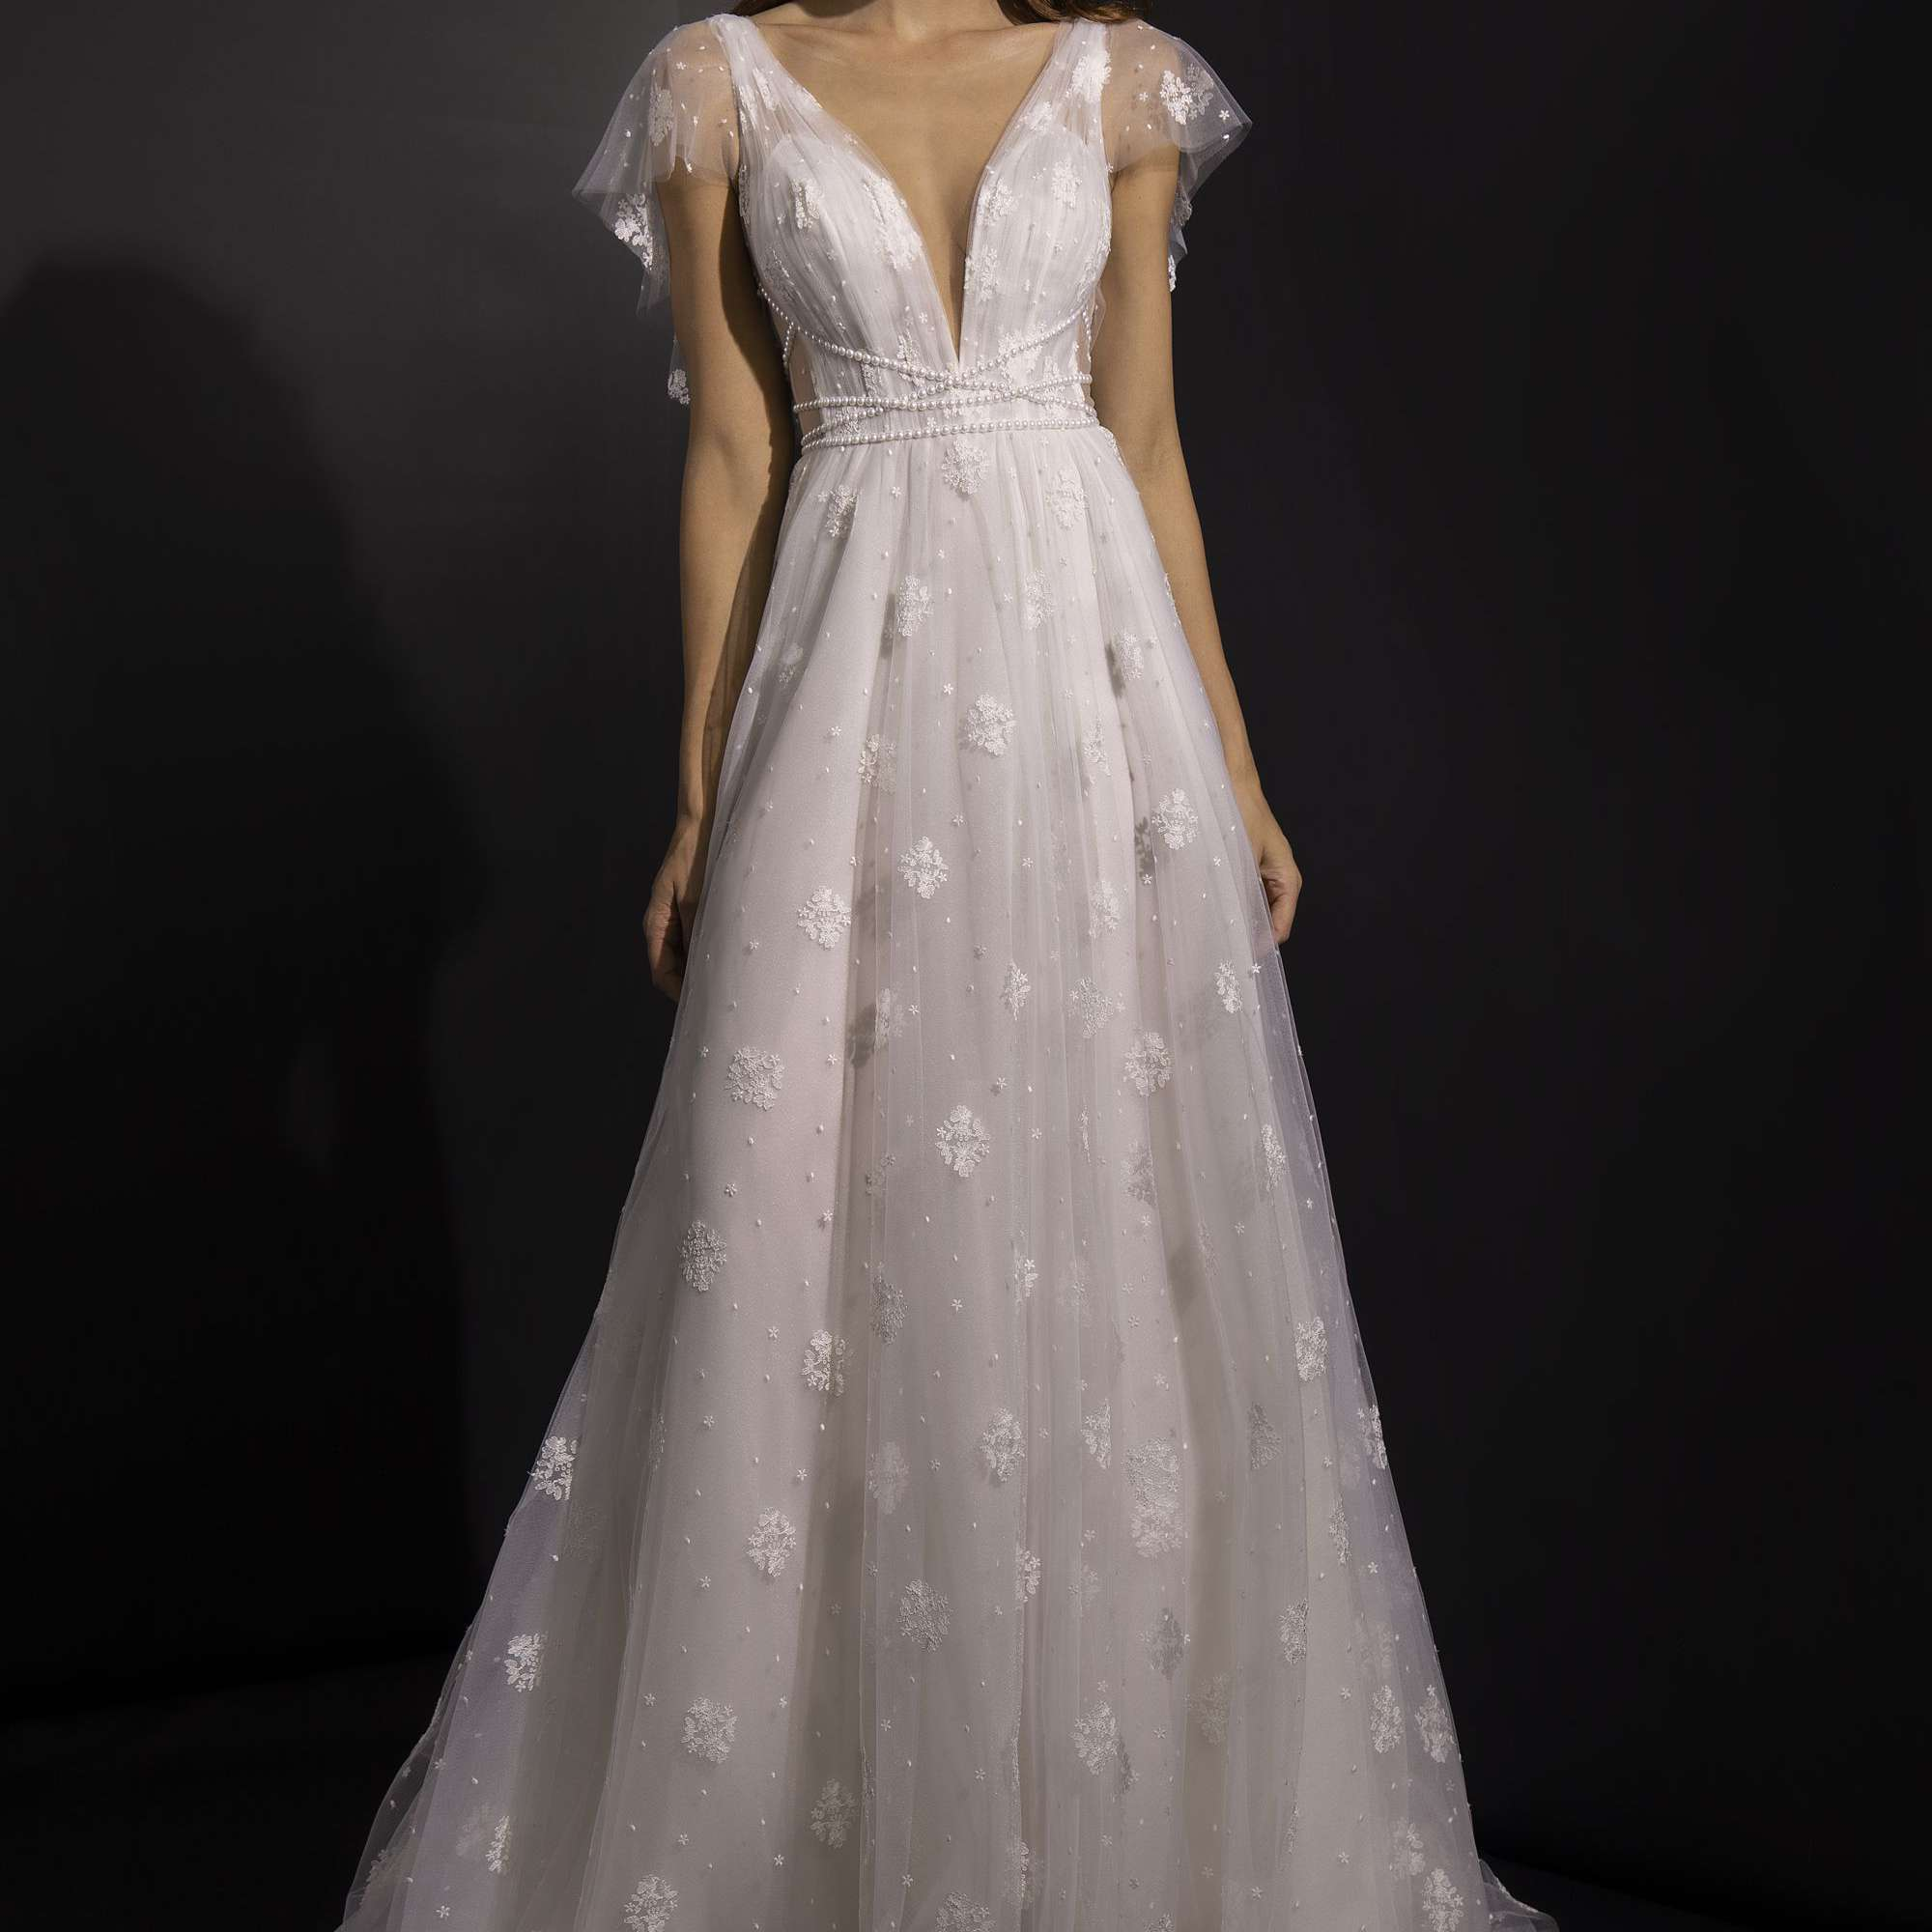 Model in V-neck A-line gown with tulle flutter sleeves and lace embellishments